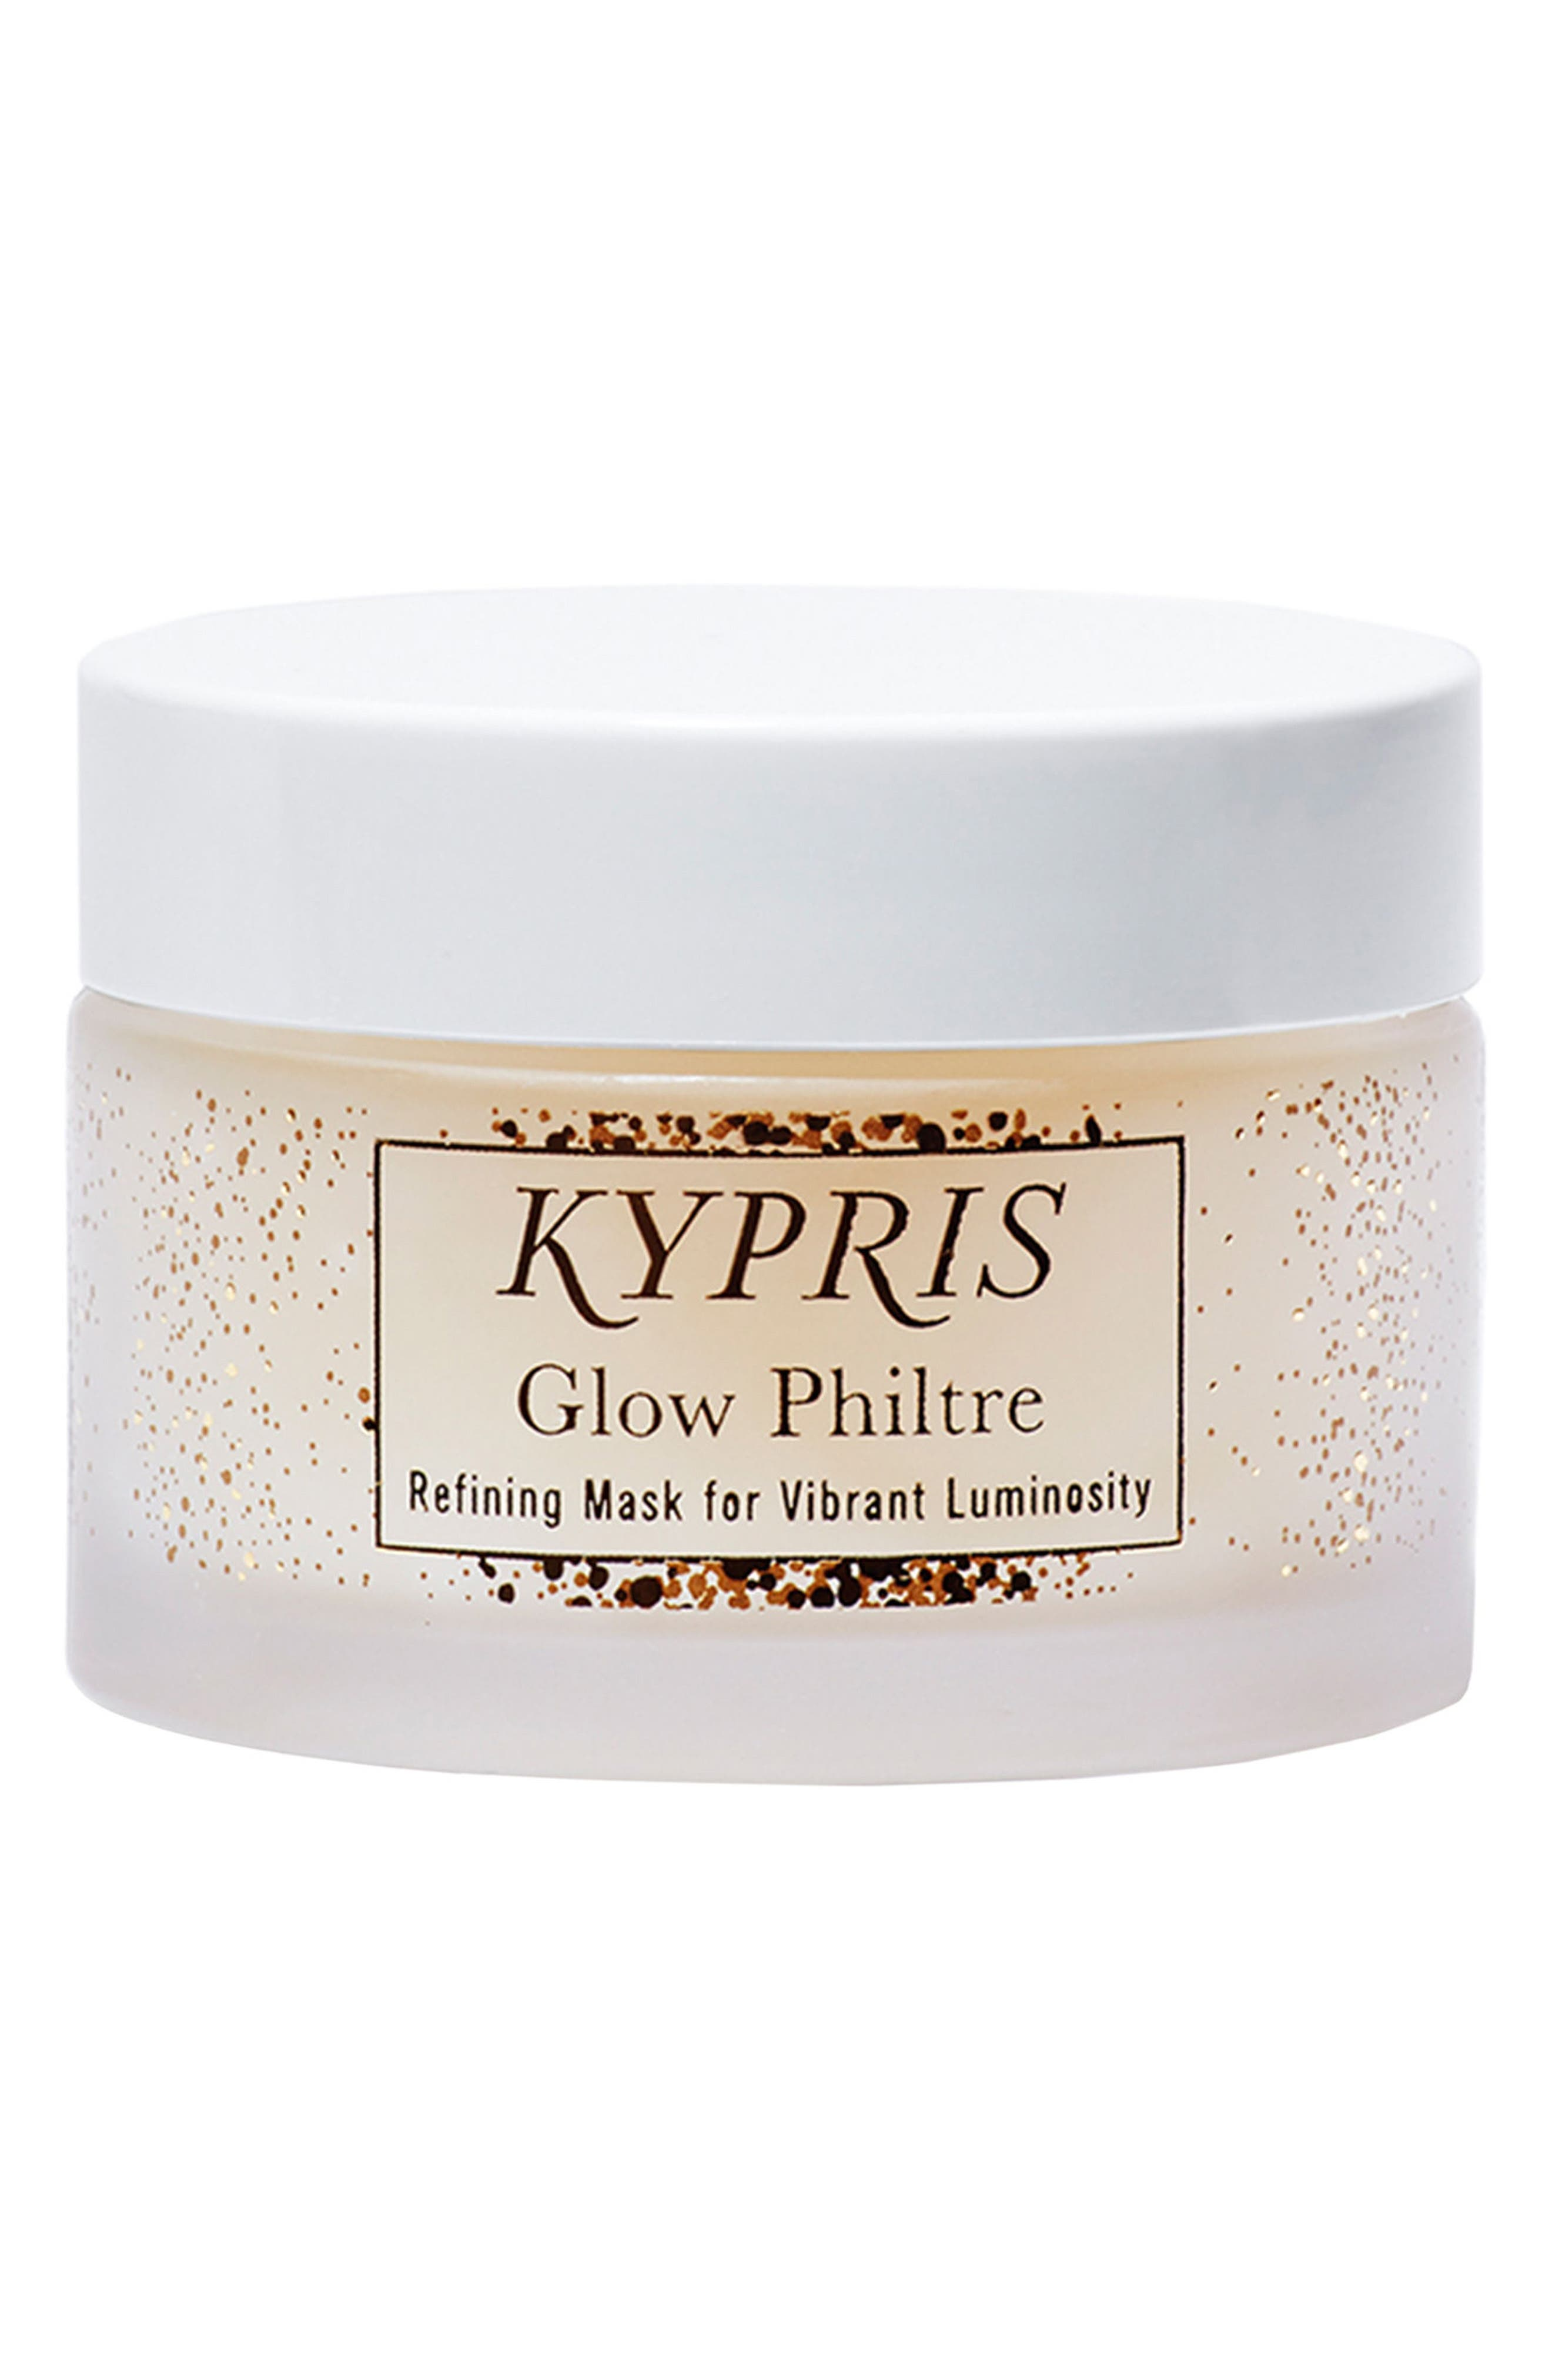 KYPRIS Beauty Glow Philtre Refining Mask for Vibrant Luminosity